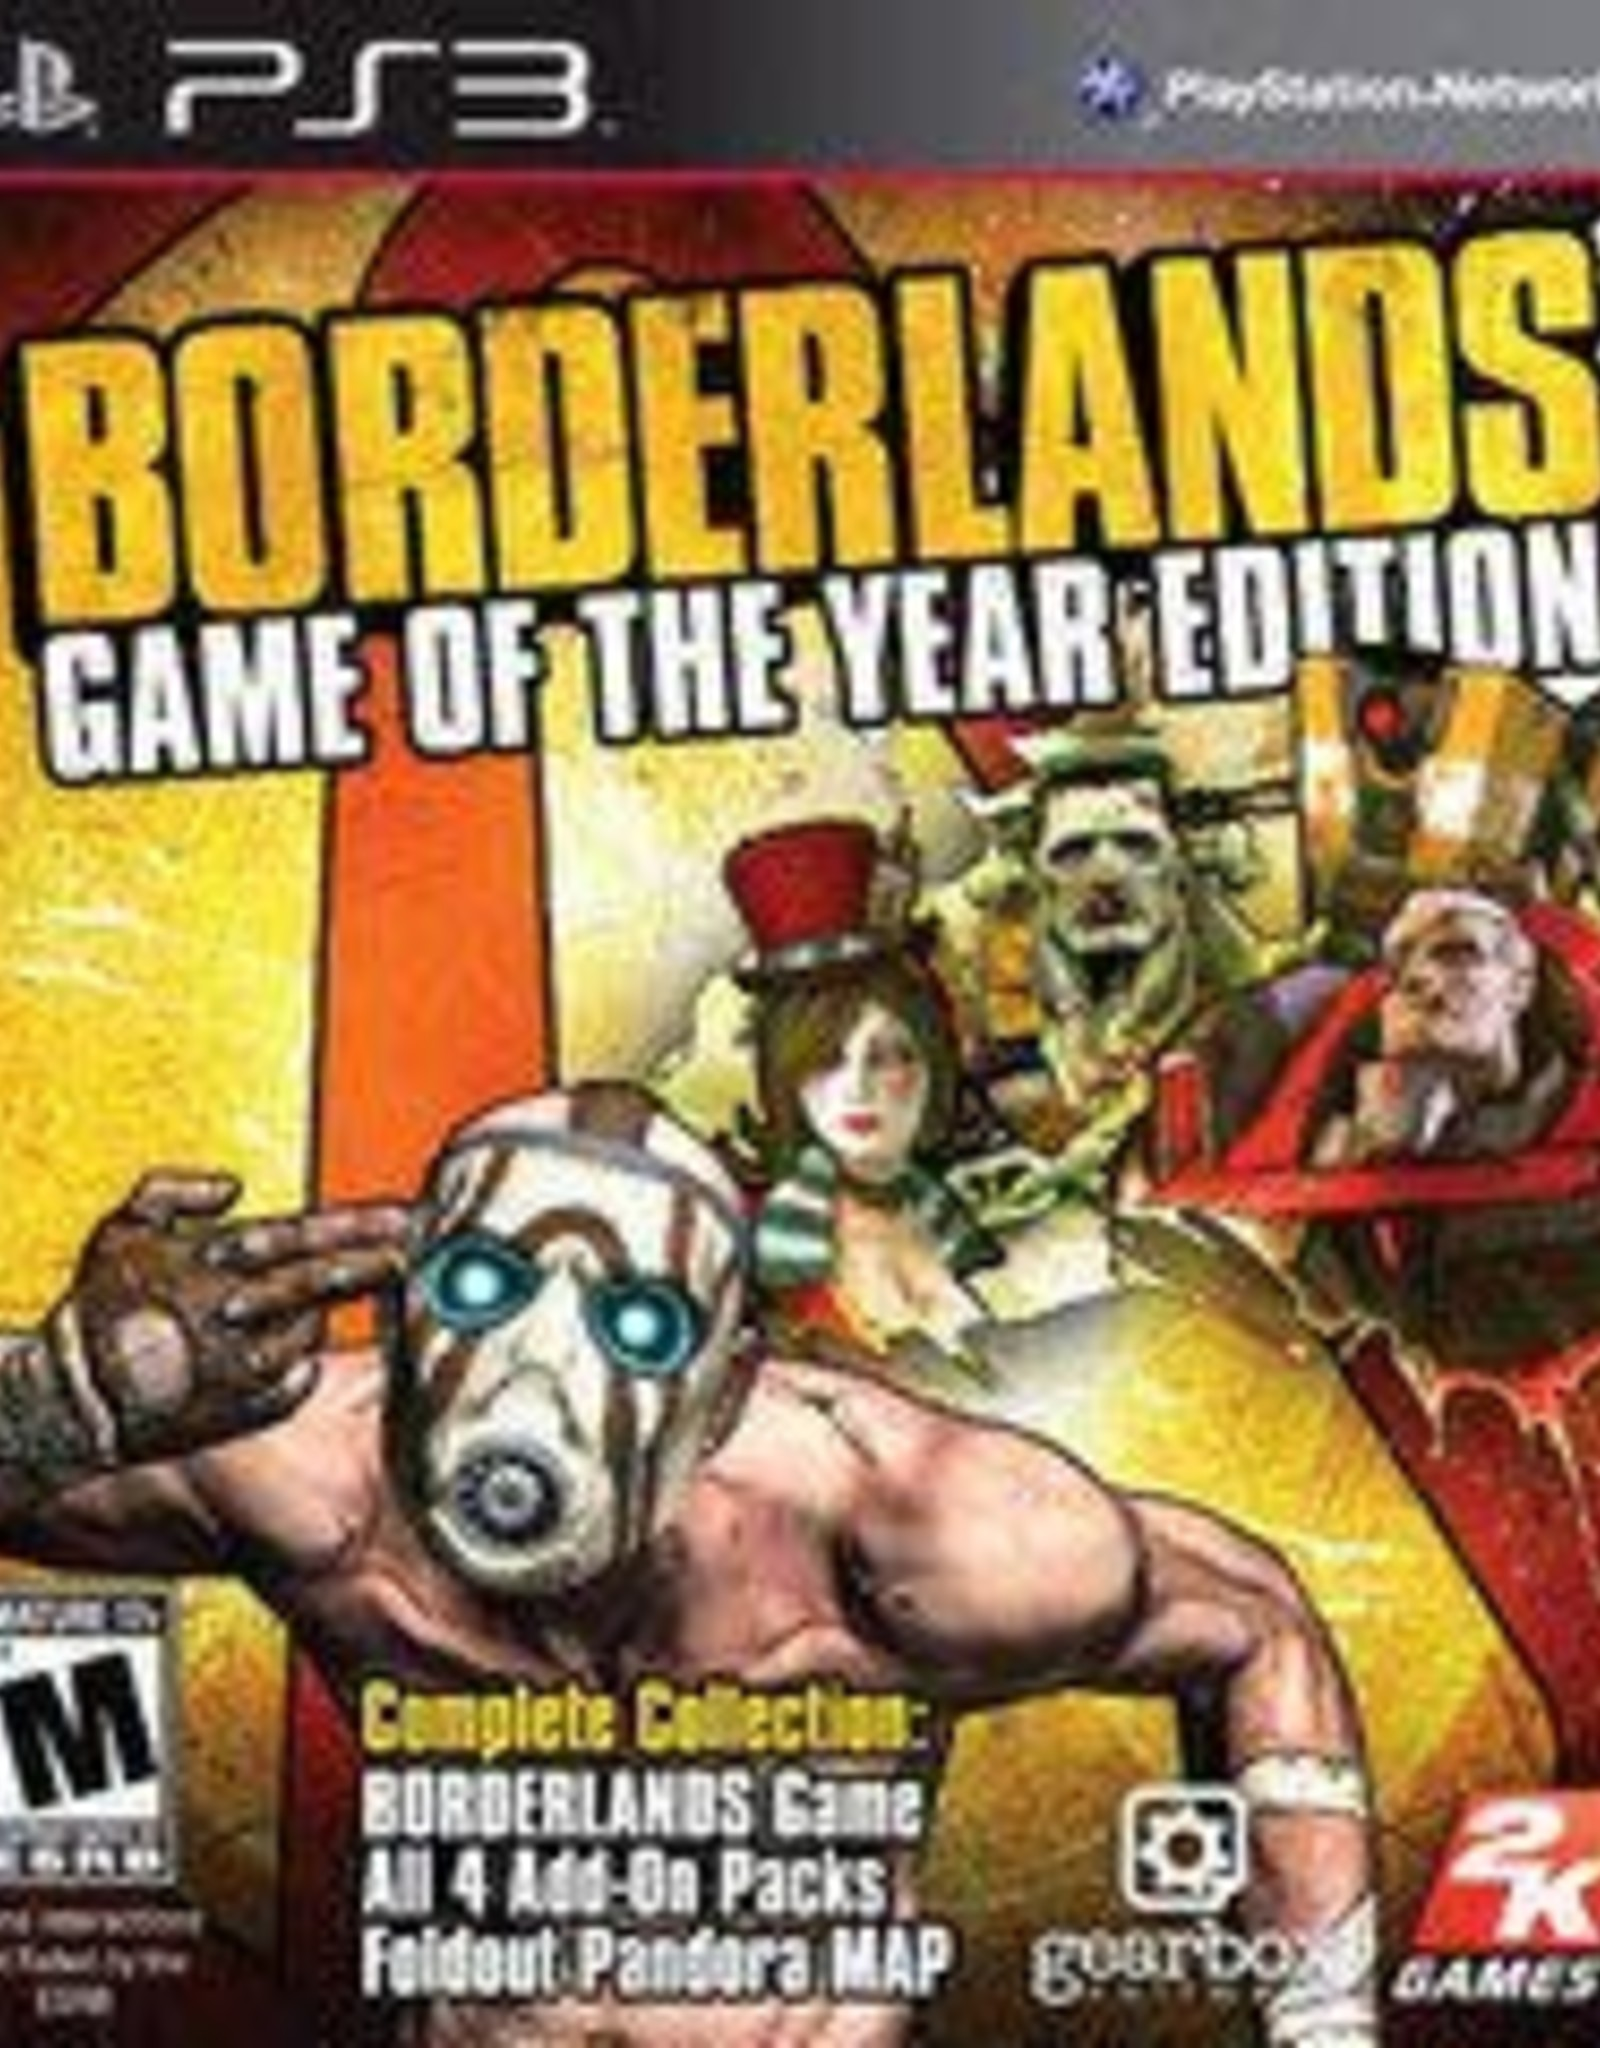 Playstation 3 Borderlands Game of the Year Edition